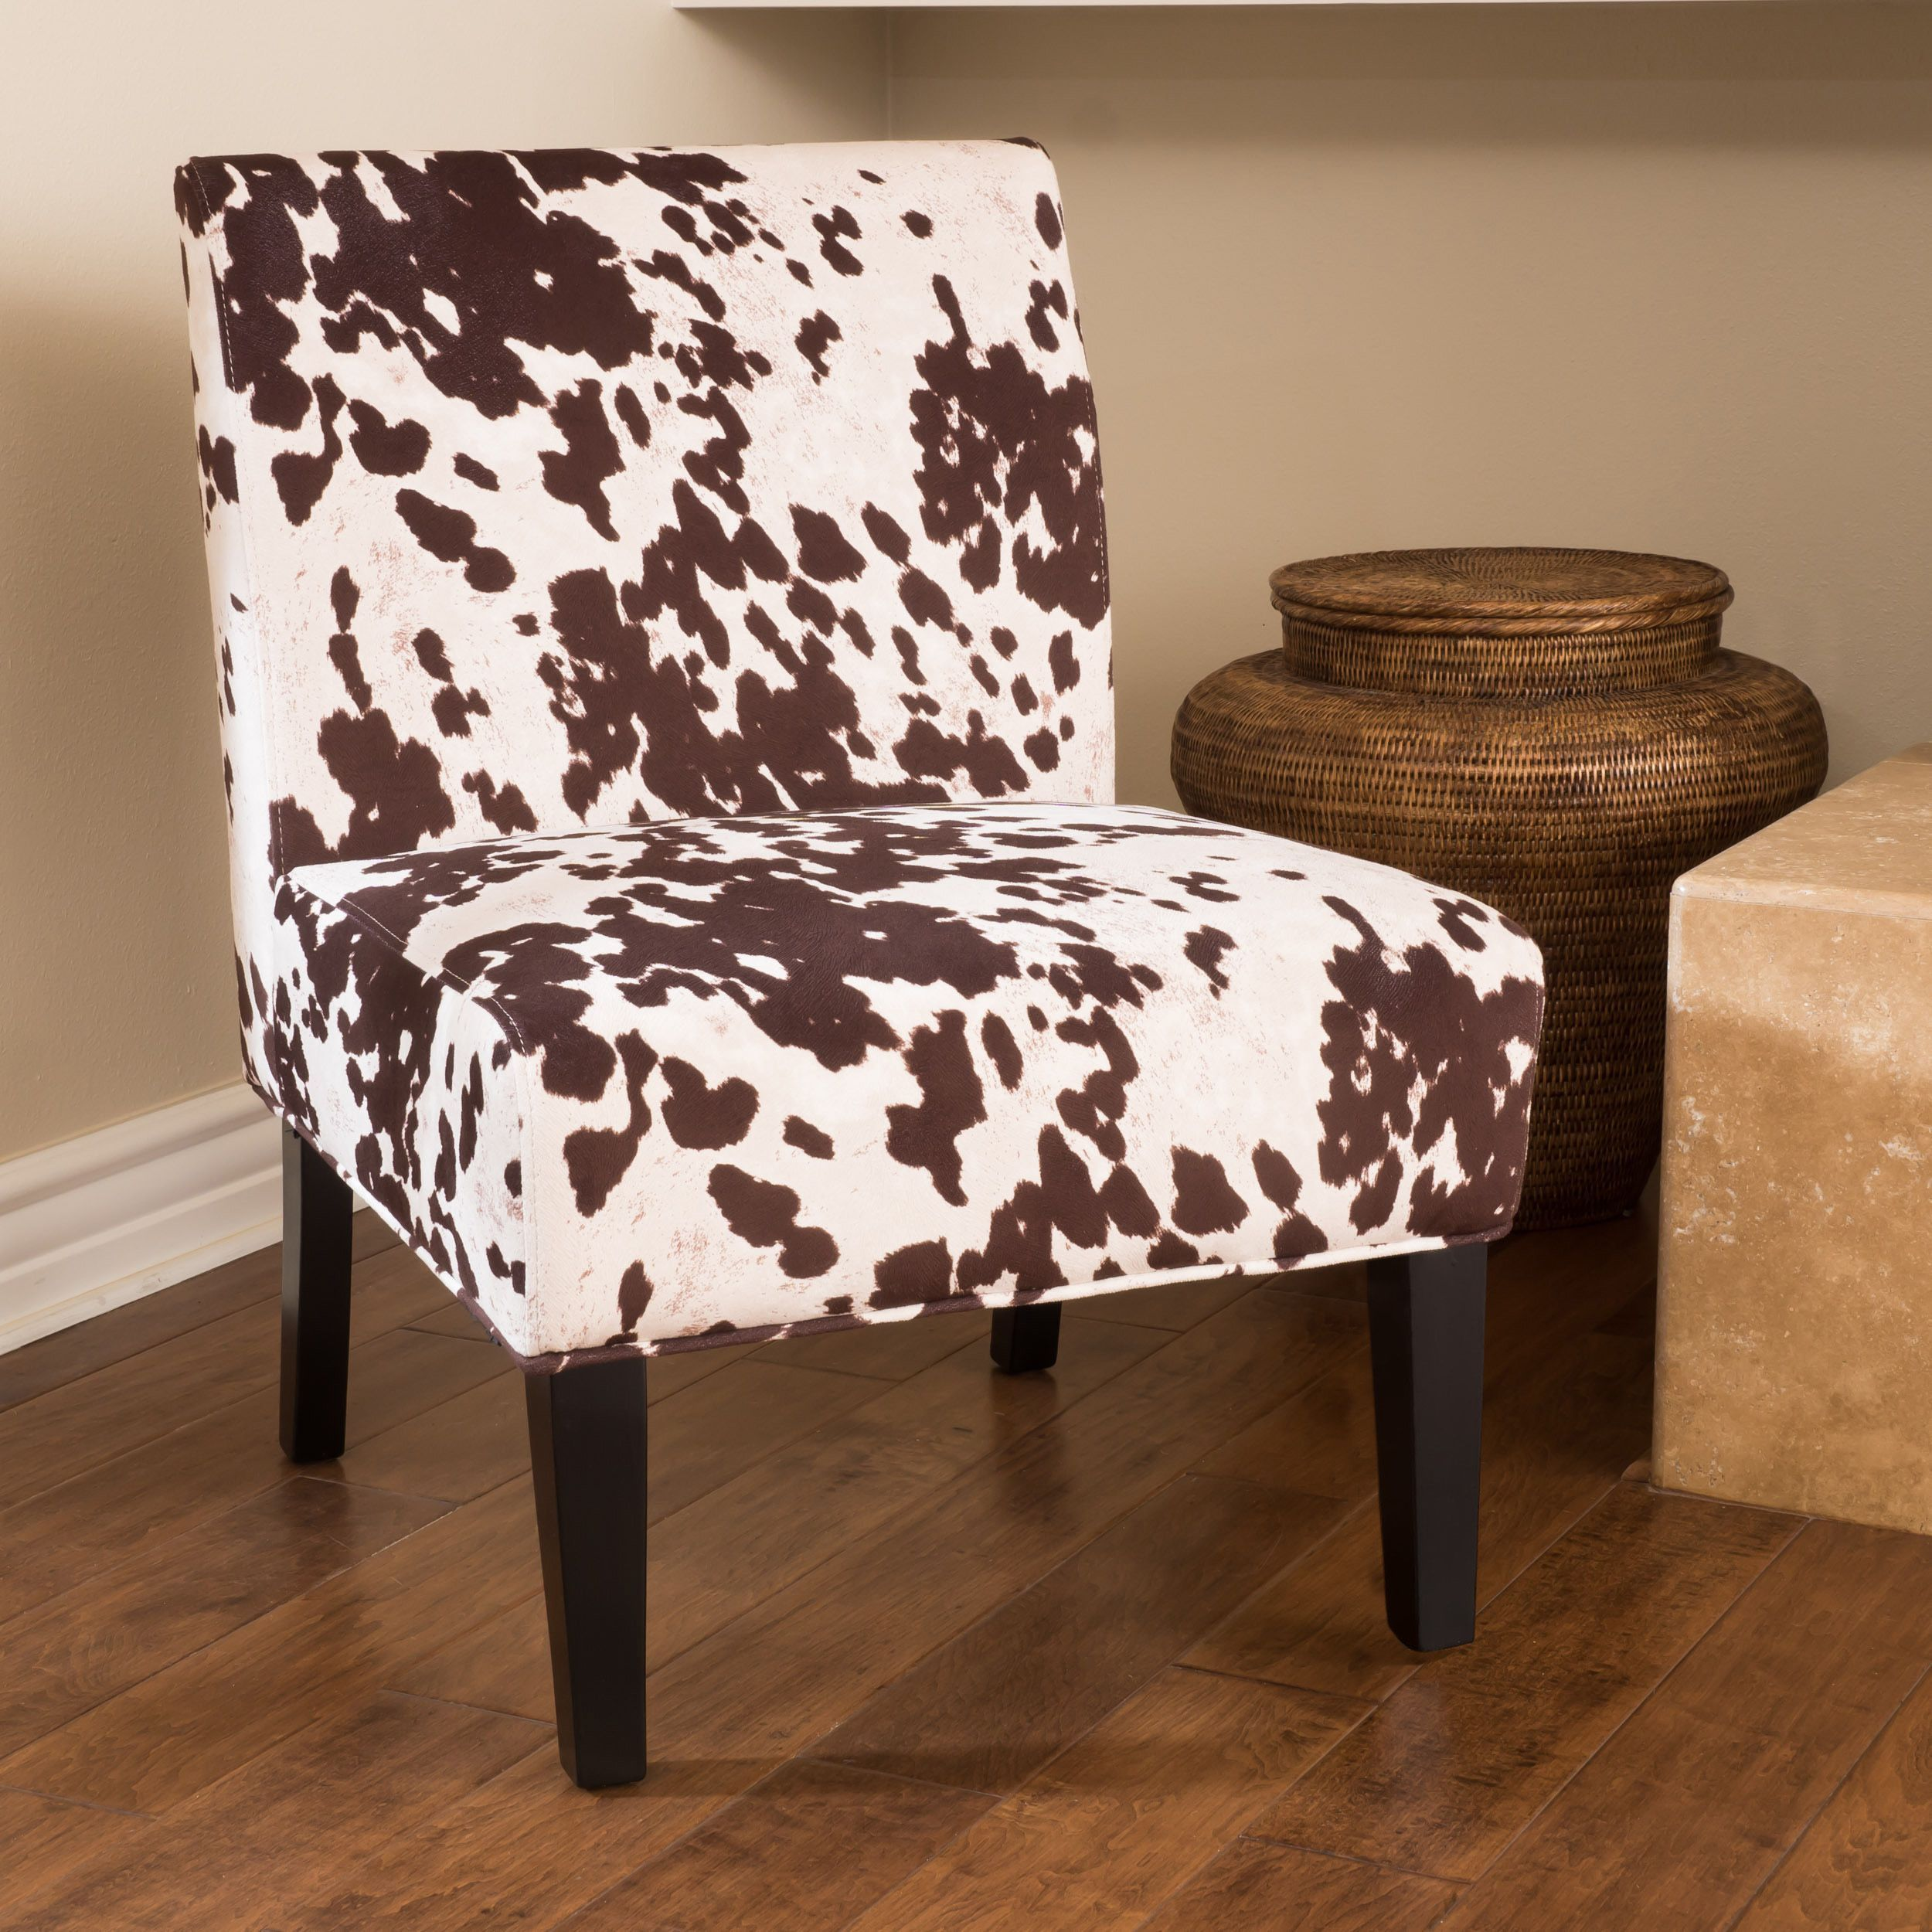 Overstock Com Online Shopping Bedding Furniture Electronics Jewelry Clothing More Fabric Dining Chairs Printed Chair Accent Chair Set #printed #chairs #living #room